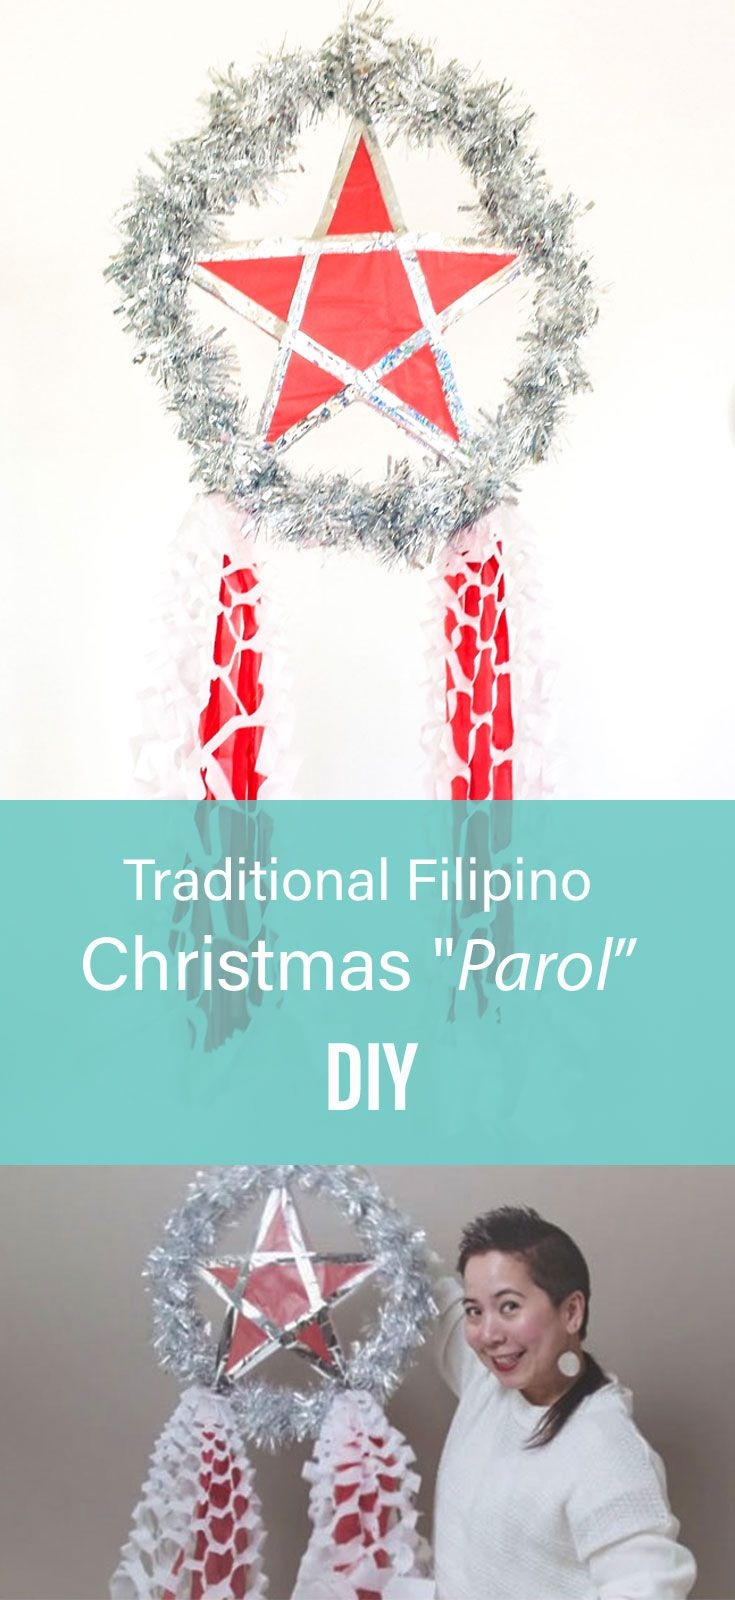 DIY Make your own traditional Filipino parol Christmas